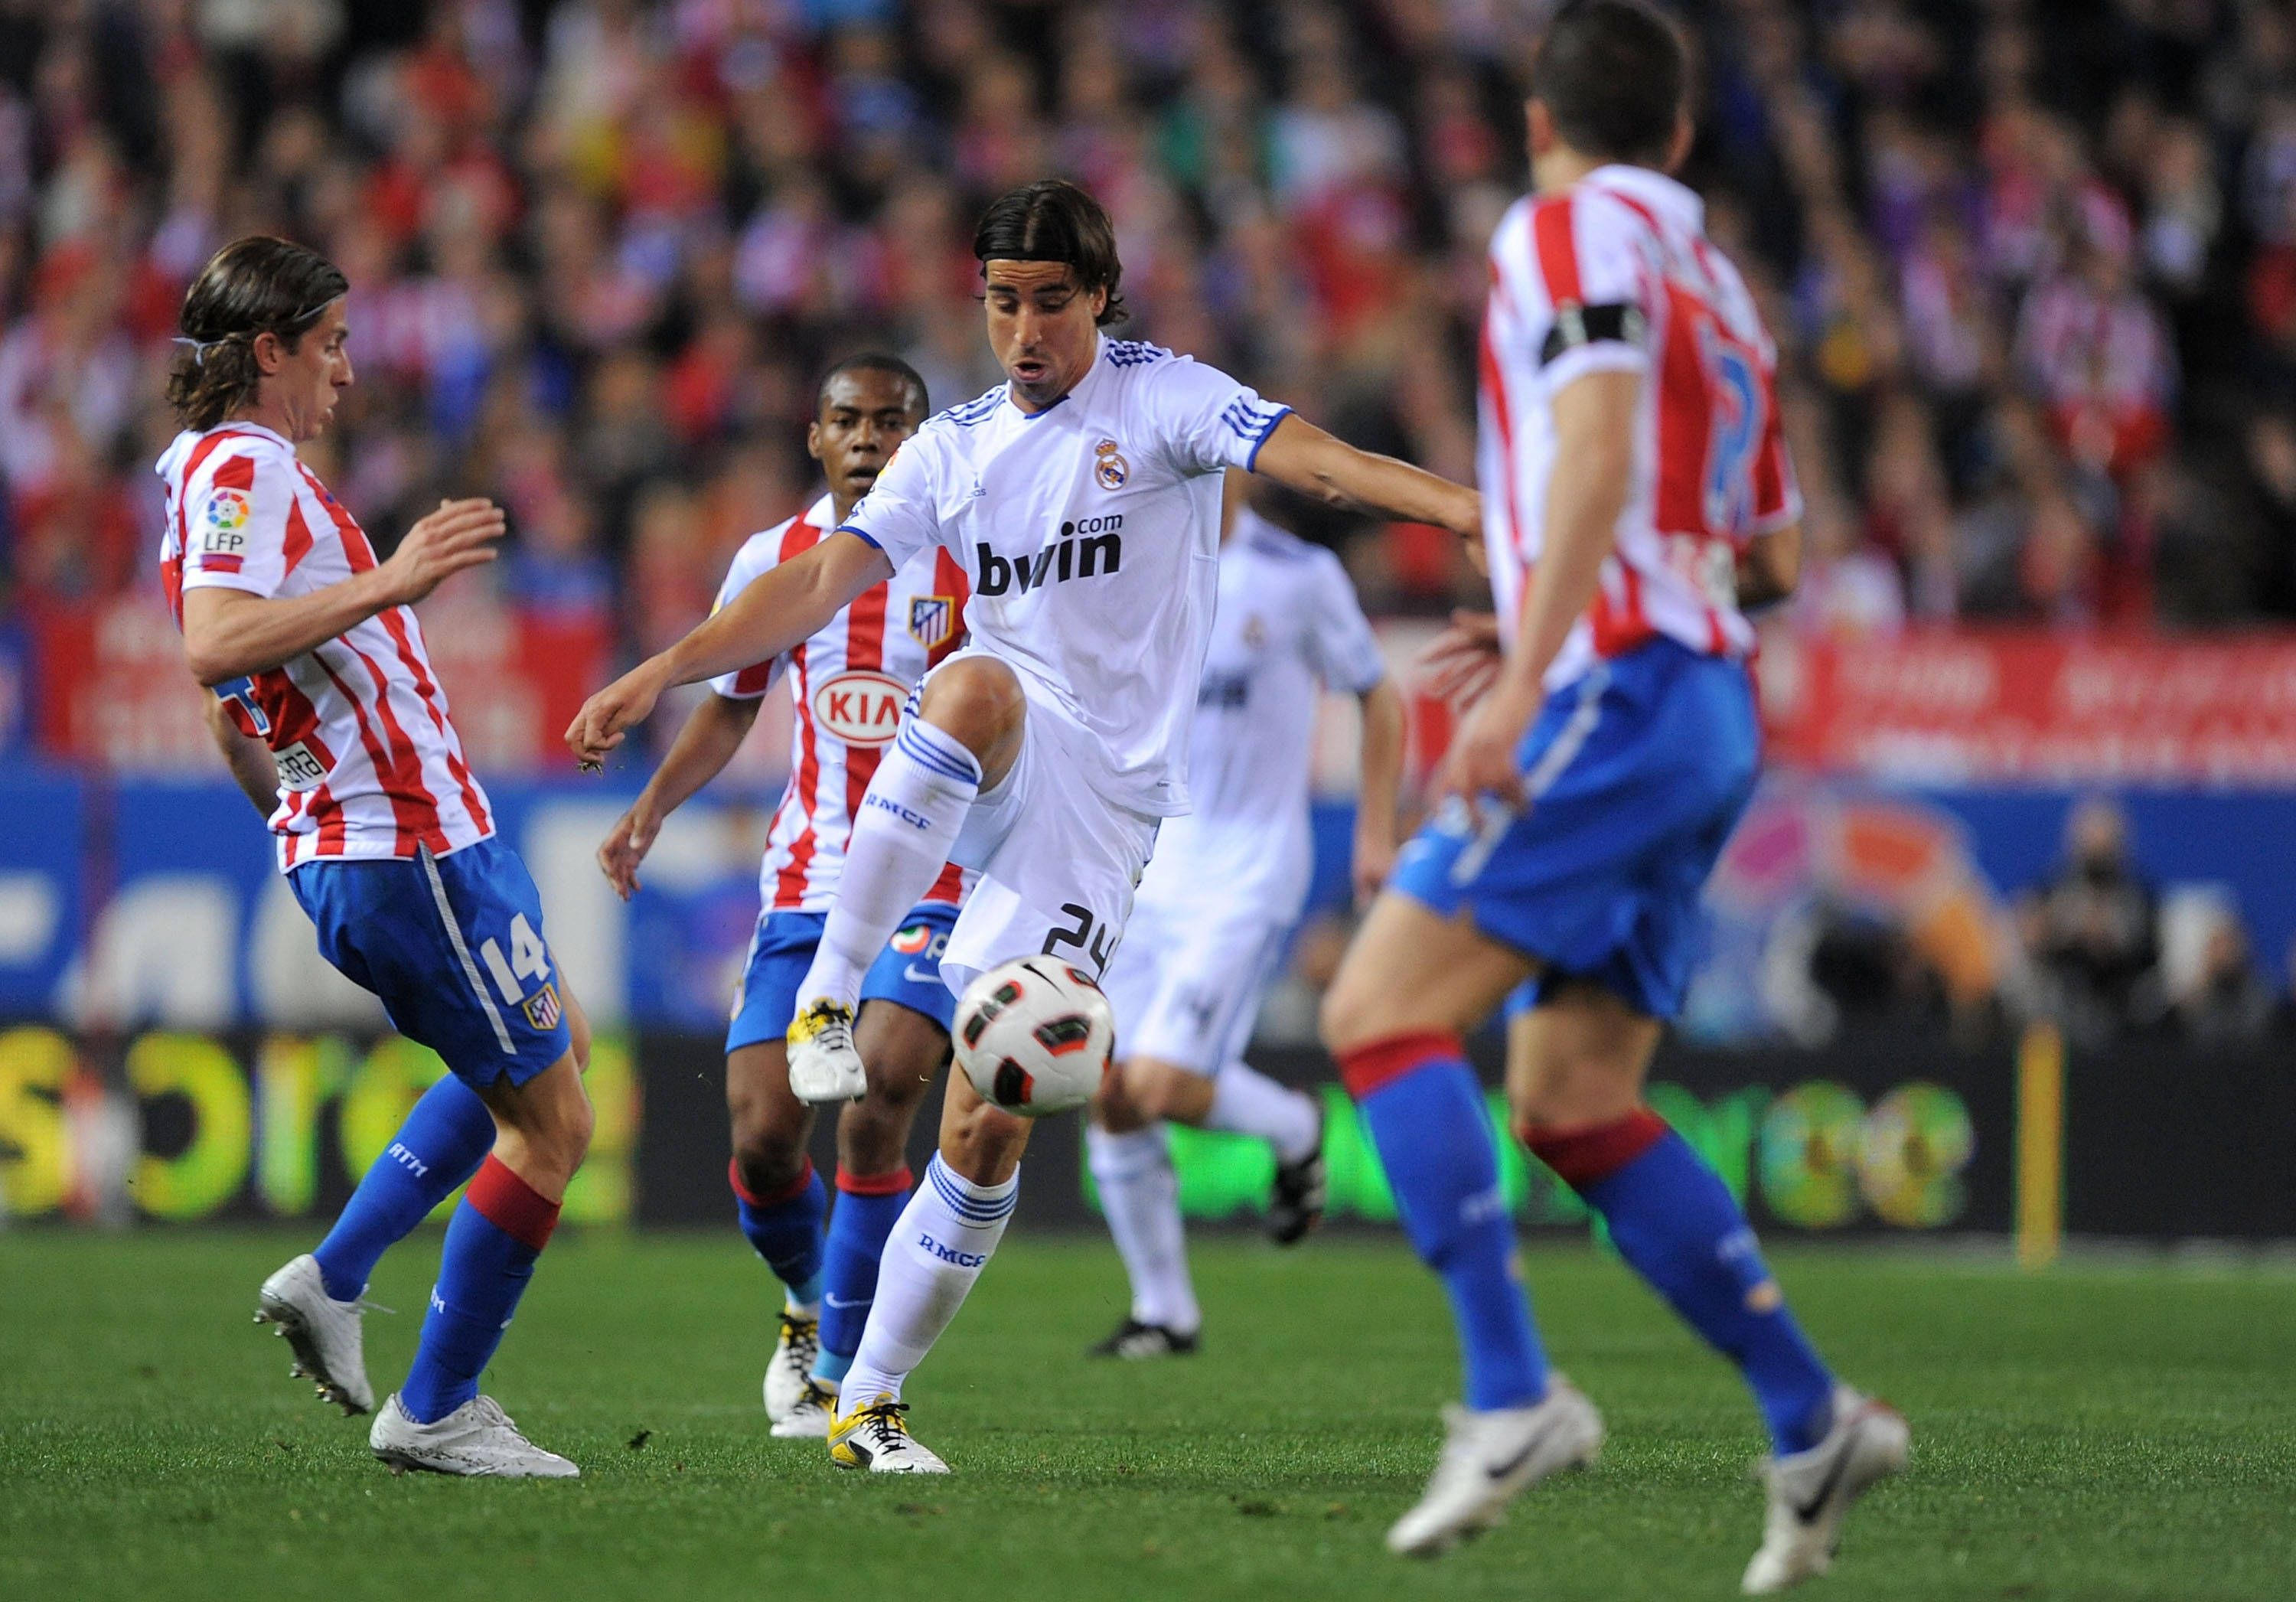 MADRID, SPAIN - MARCH 19:  Sami Khedira #24 of Real Madrid clashes with Filipe Luis of Atletico Madrid during the La Liga match between Atletico Madrid and Real Madrid at Vicente Calderon Stadium on March 19, 2011 in Madrid, Spain.  (Photo by Denis Doyle/